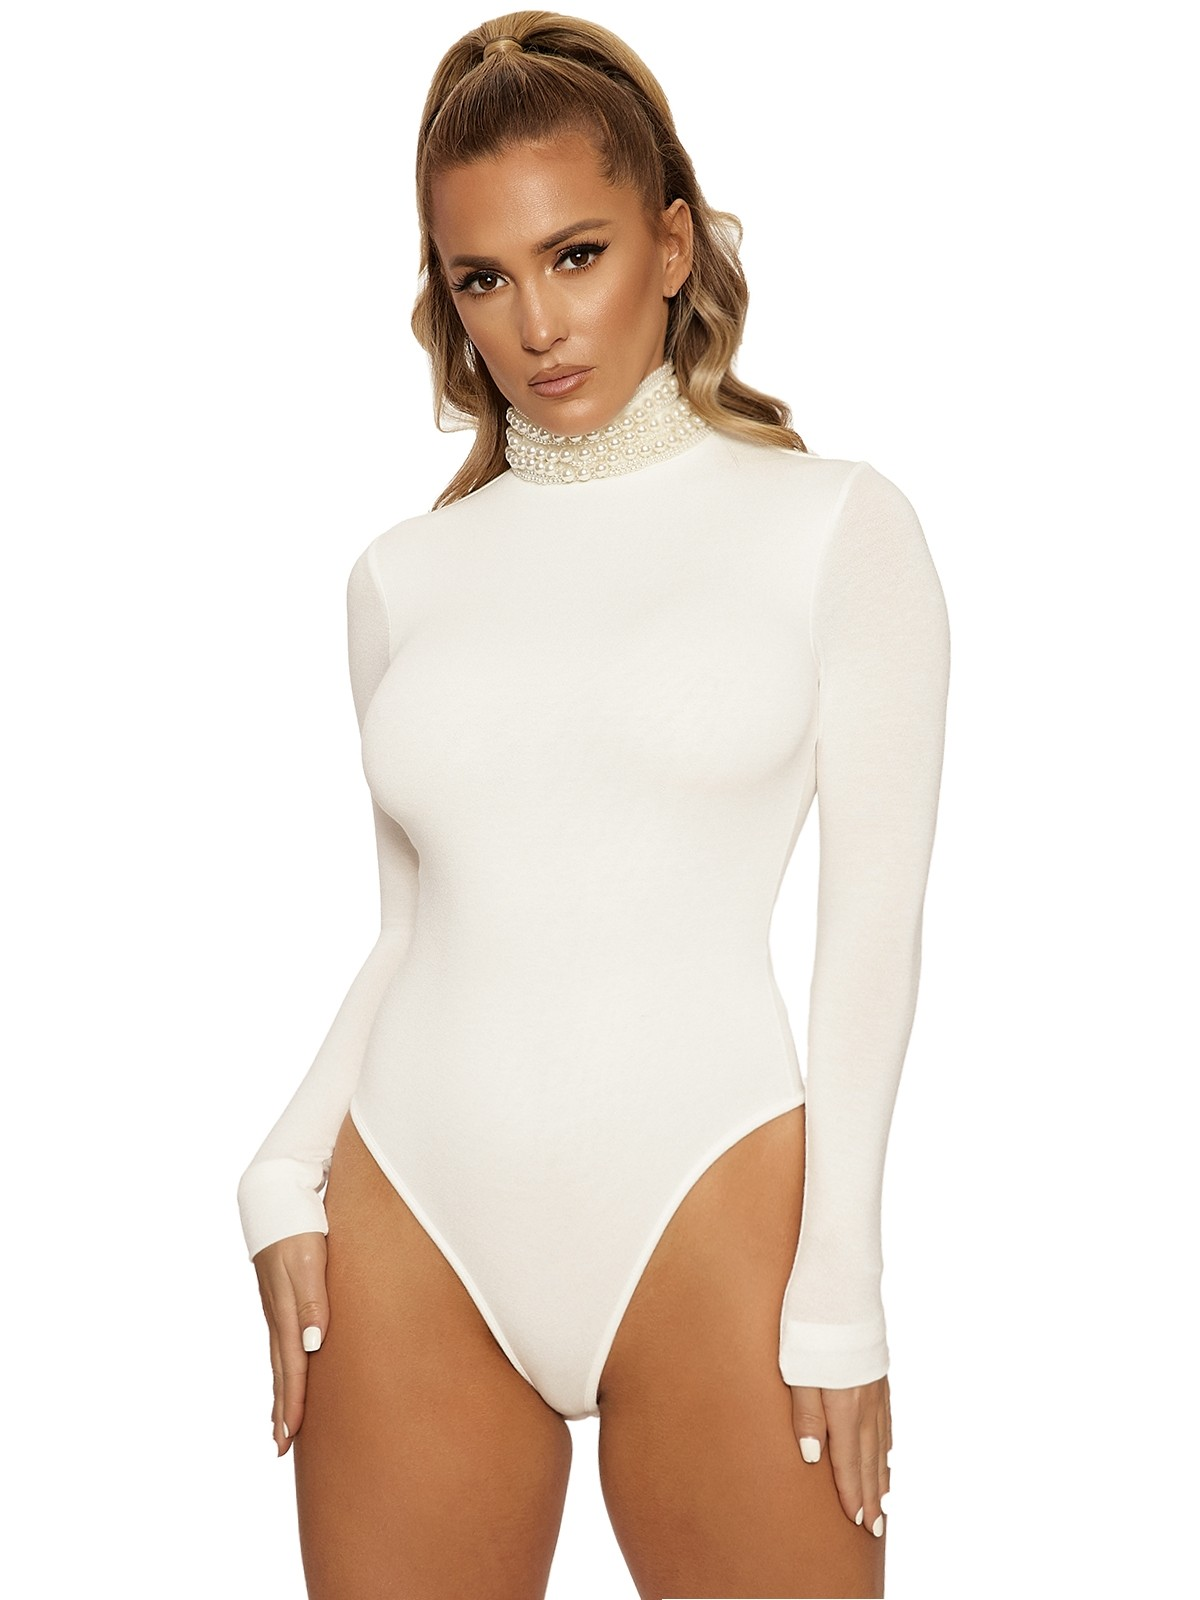 All Pearl'd Up Bodysuit by Naked Wardrobe, available on nakedwardrobe.com for $25 Kylie Jenner Top SIMILAR PRODUCT